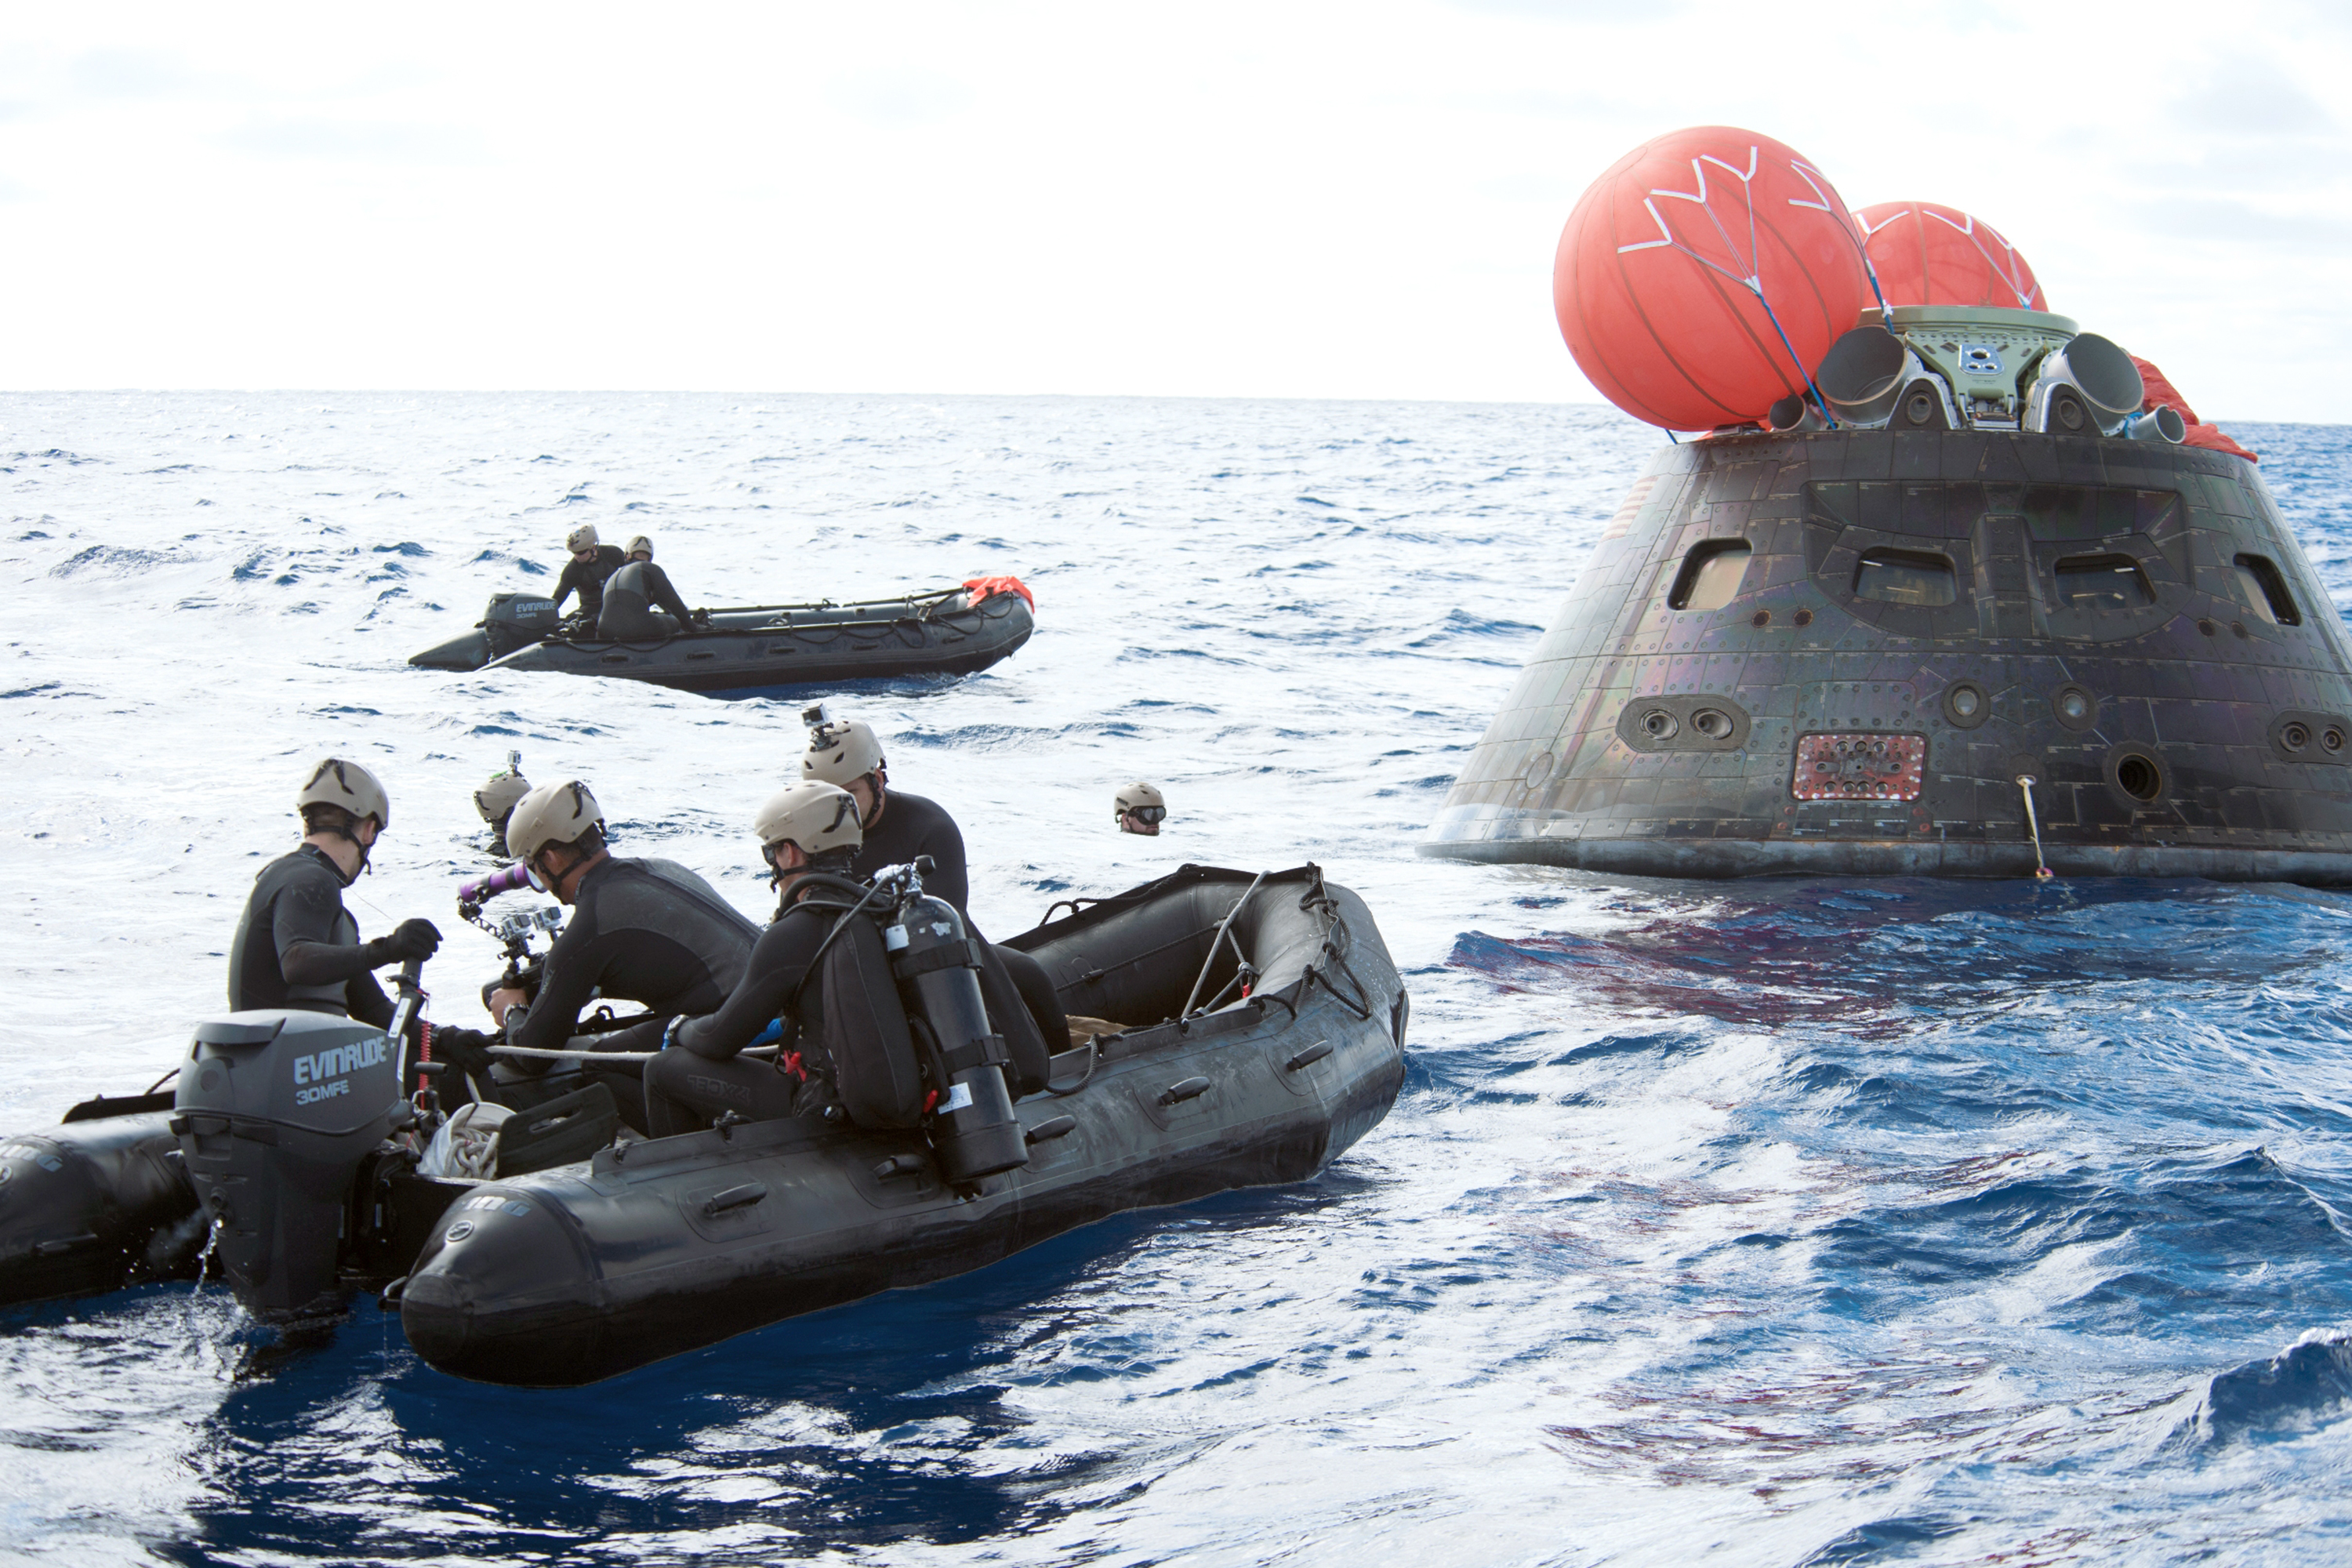 spacecraft boats - photo #24